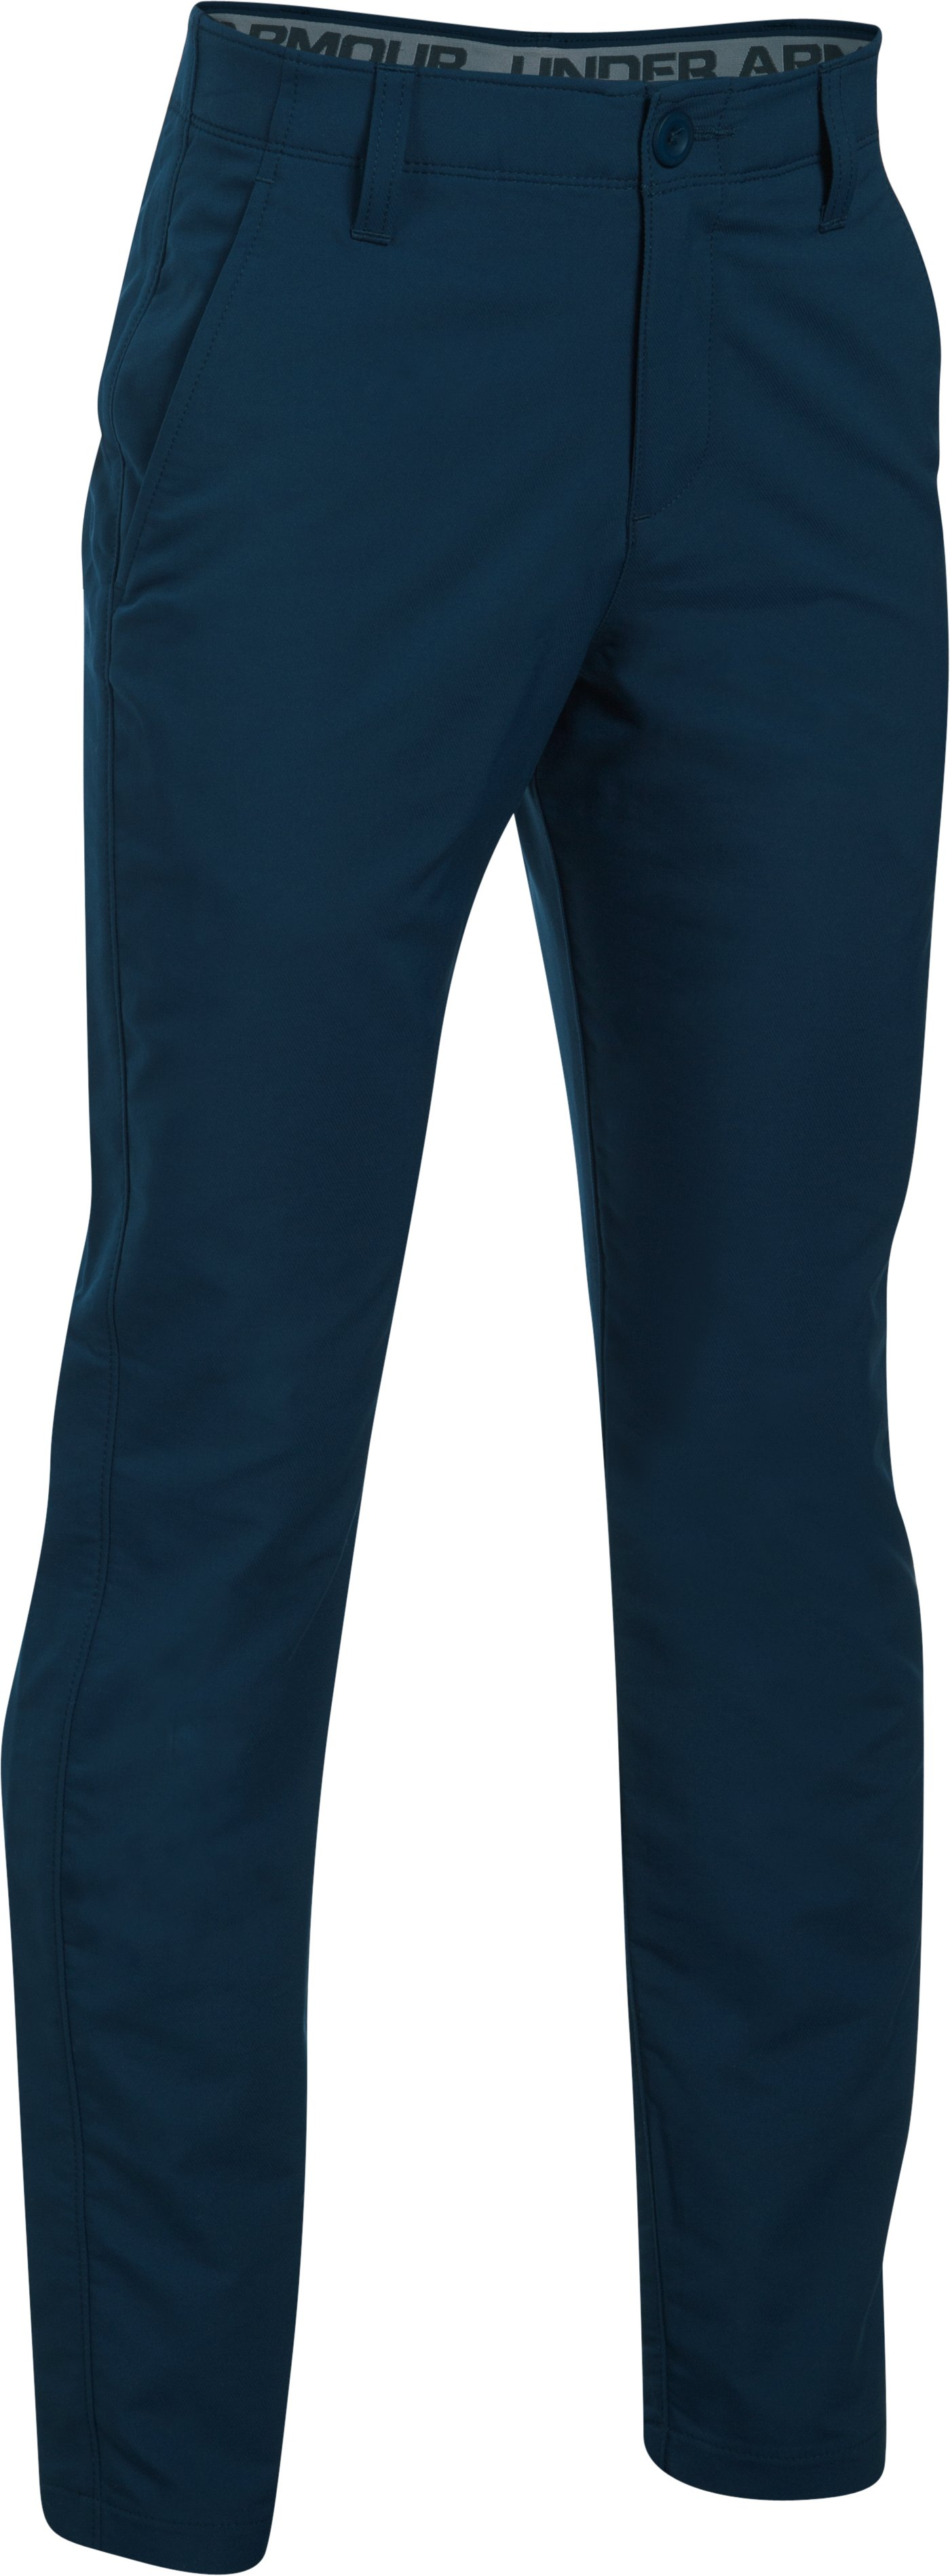 Boys' UA Match Play Pants, Academy